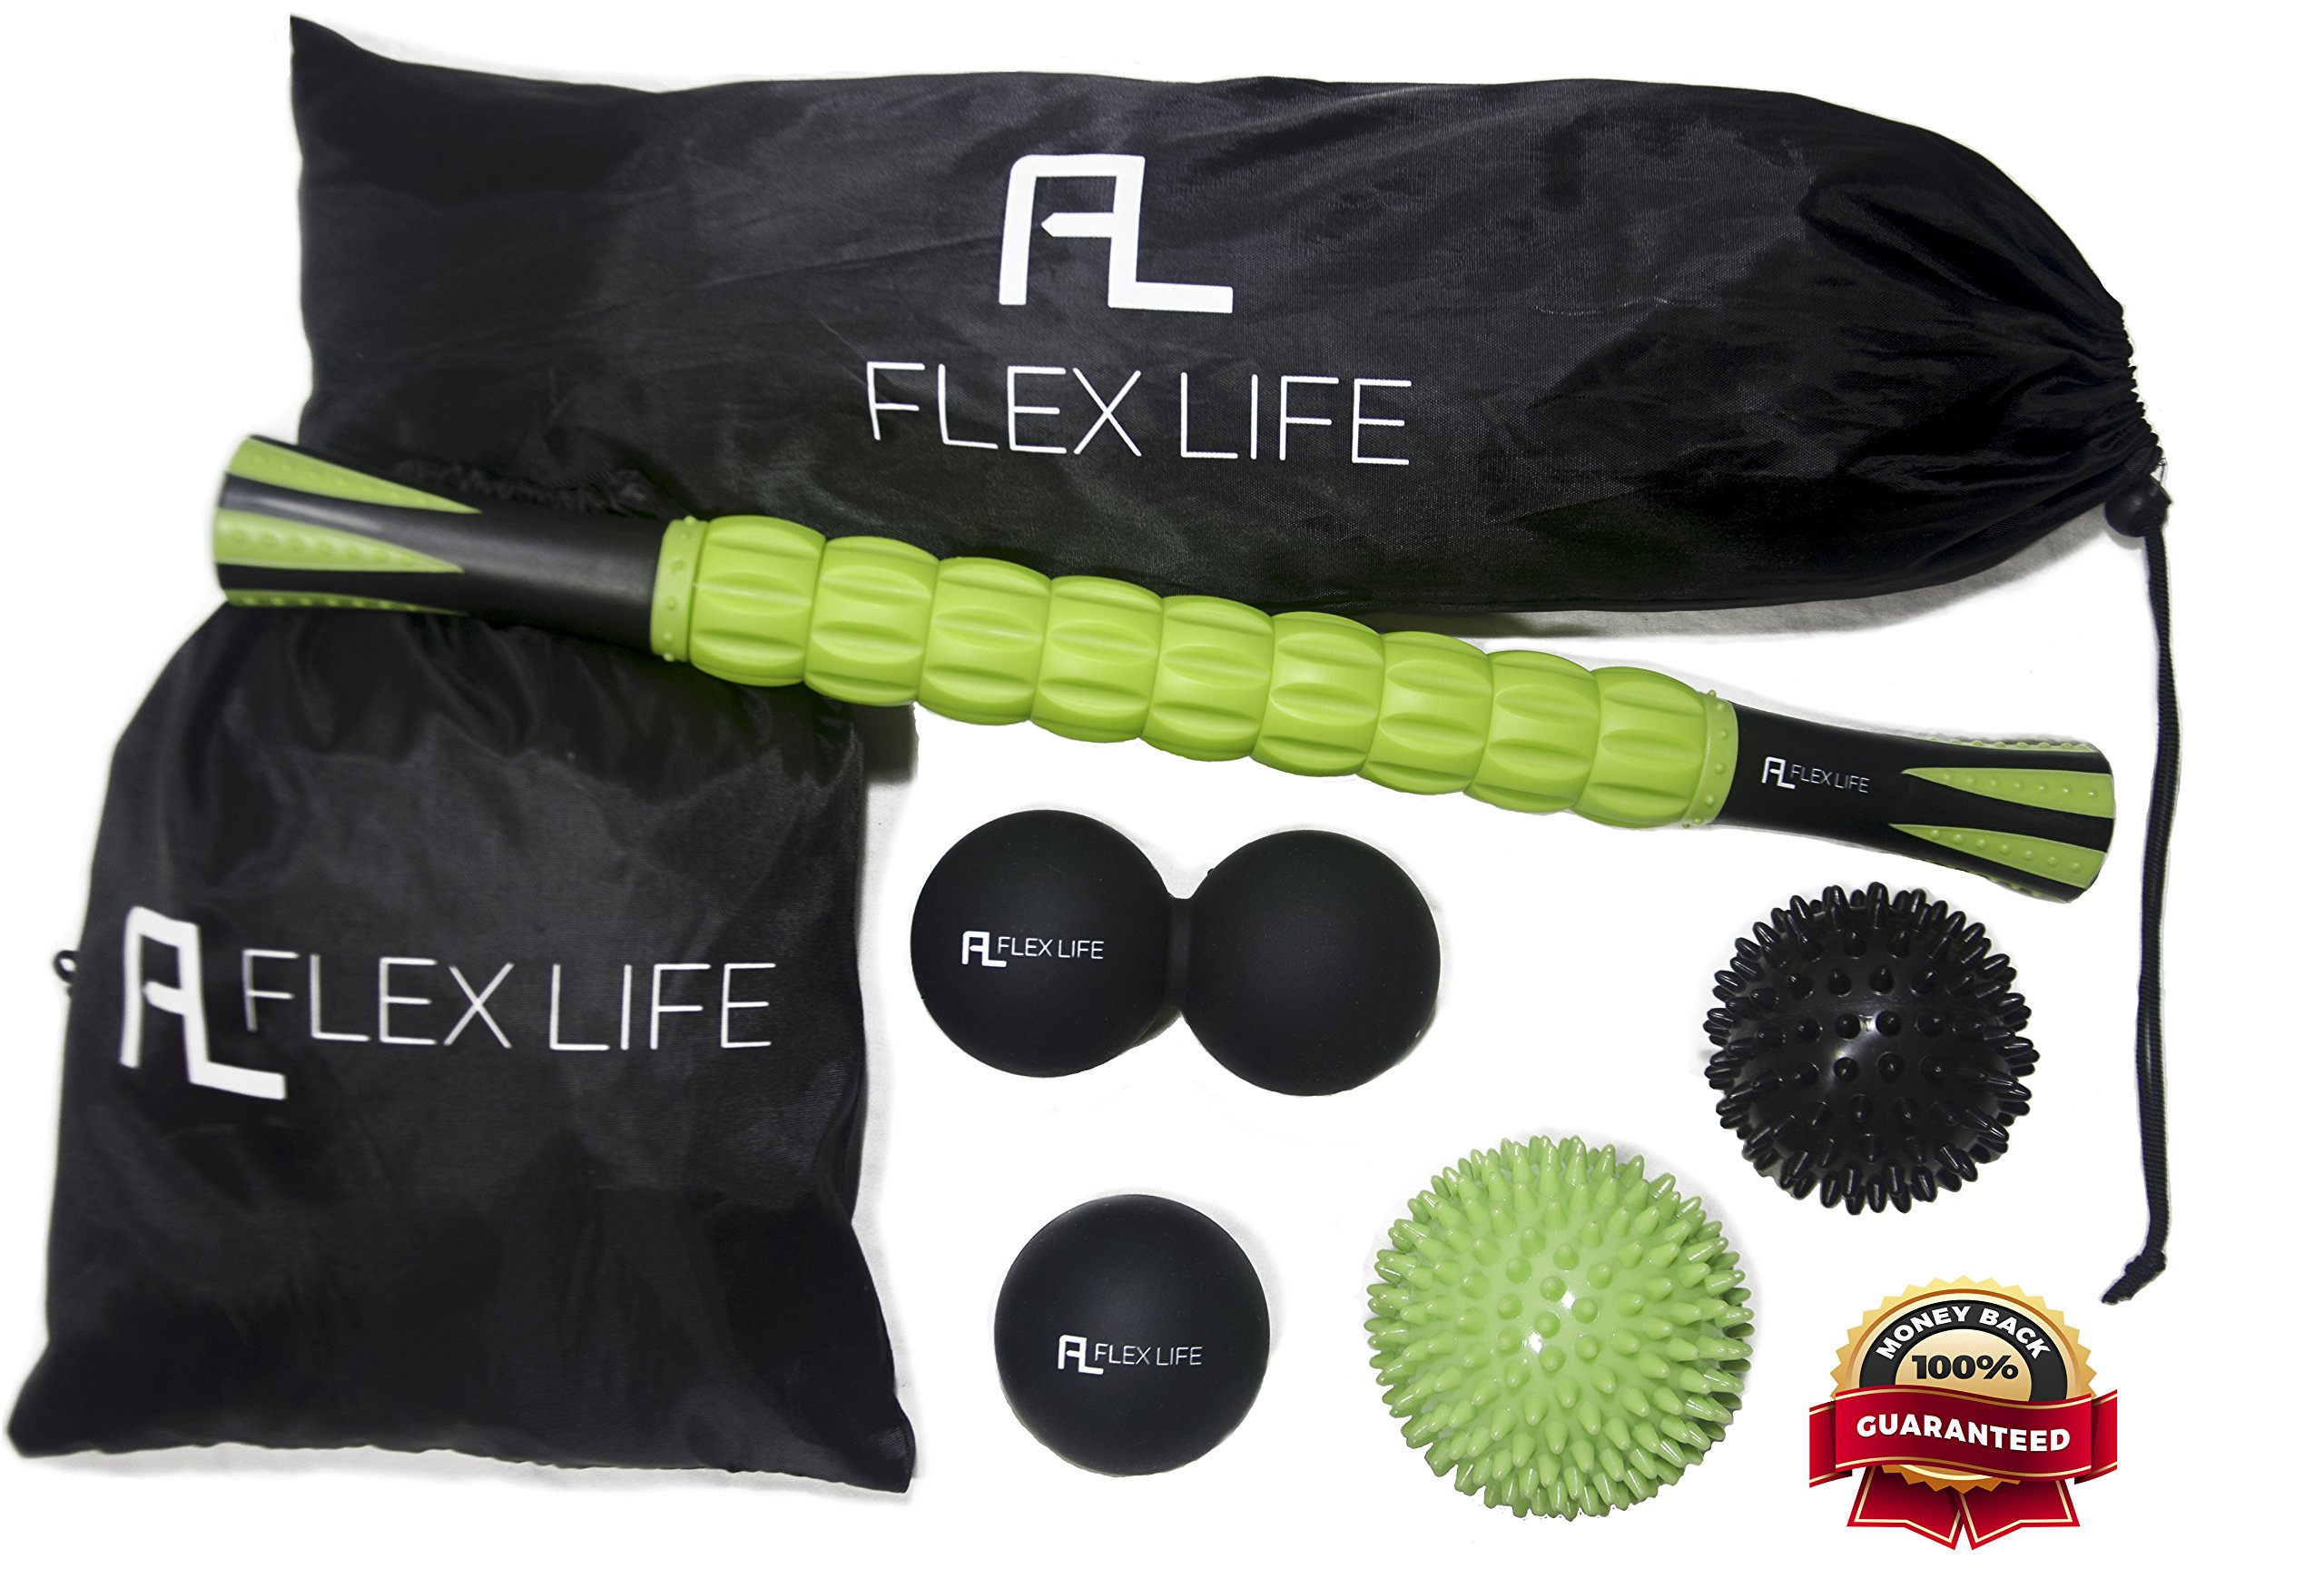 Flex Life Massage Ball Set & Muscle Roller Stick Massager - 2 Spiky Ball, 1 Lacrosse Ball, 1 Peanut Ball, (1) 18'' Roller Stick. Great Rollers For Plantar Fasciitis, Mobility, Recovery, Soreness by Flex Life (Image #1)